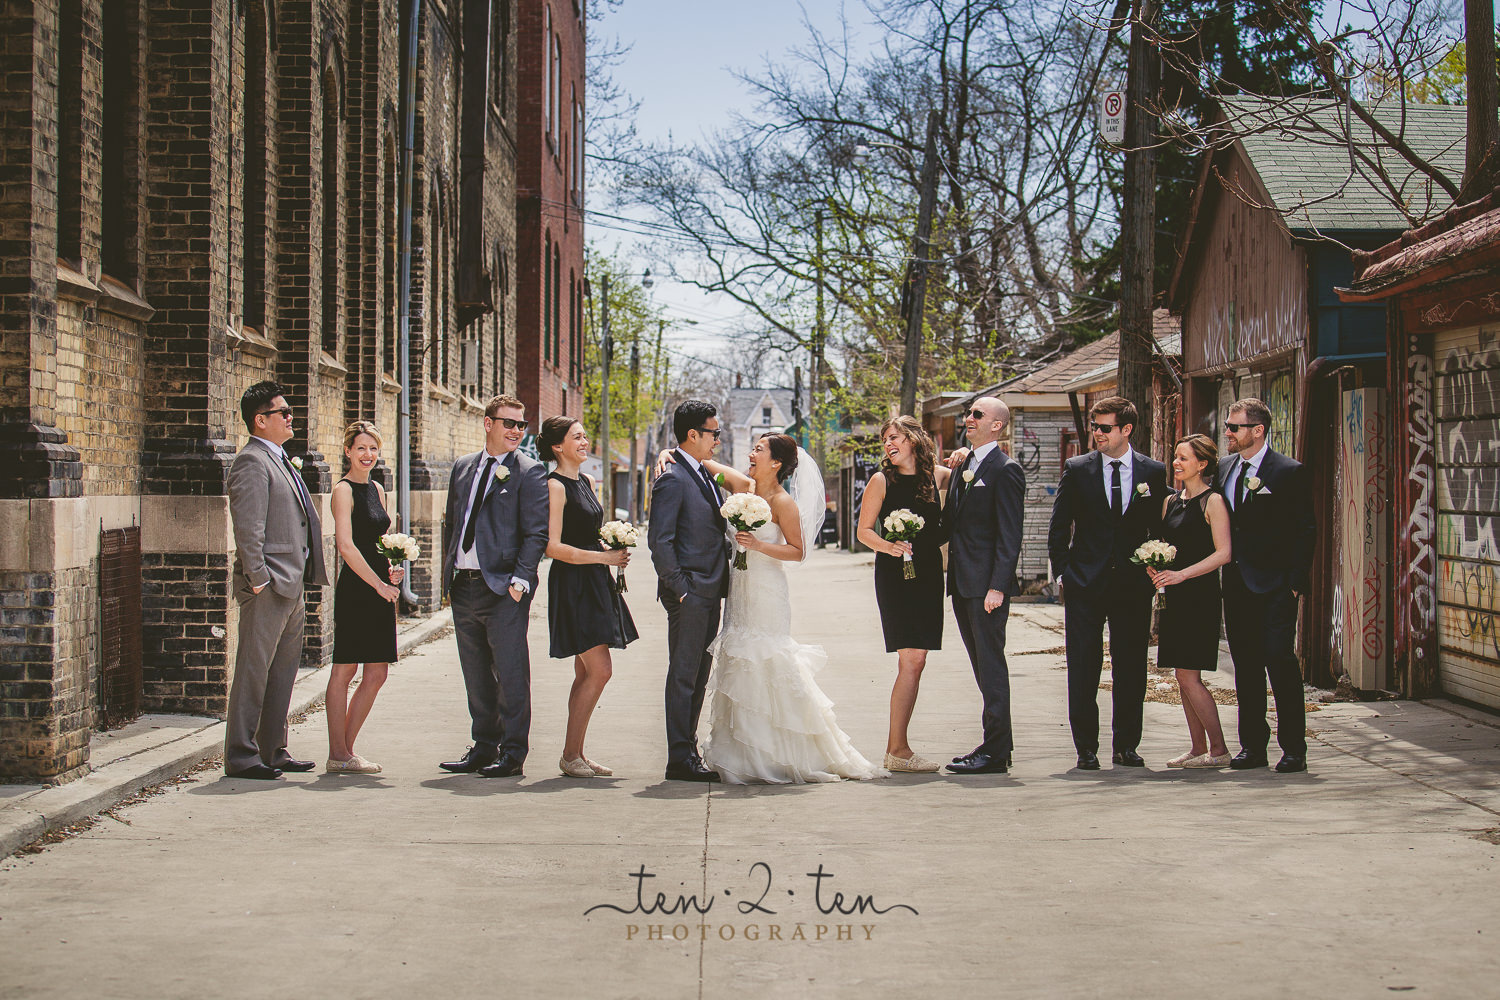 #communityovercompetition, community over competition, rising tide society, rising tide society community over competition, the dot toronto wedding photographer directory